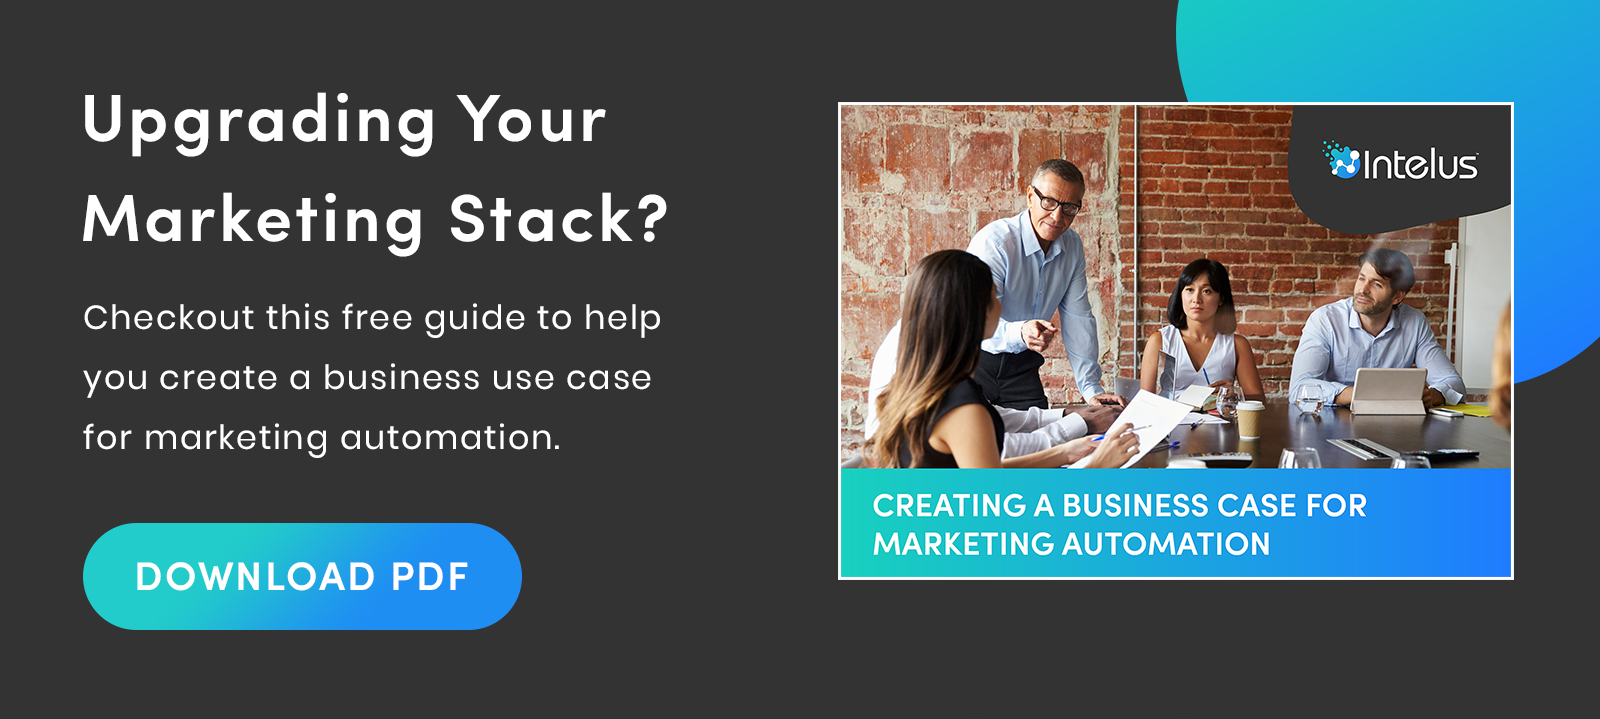 Creating a business case for marketing automation